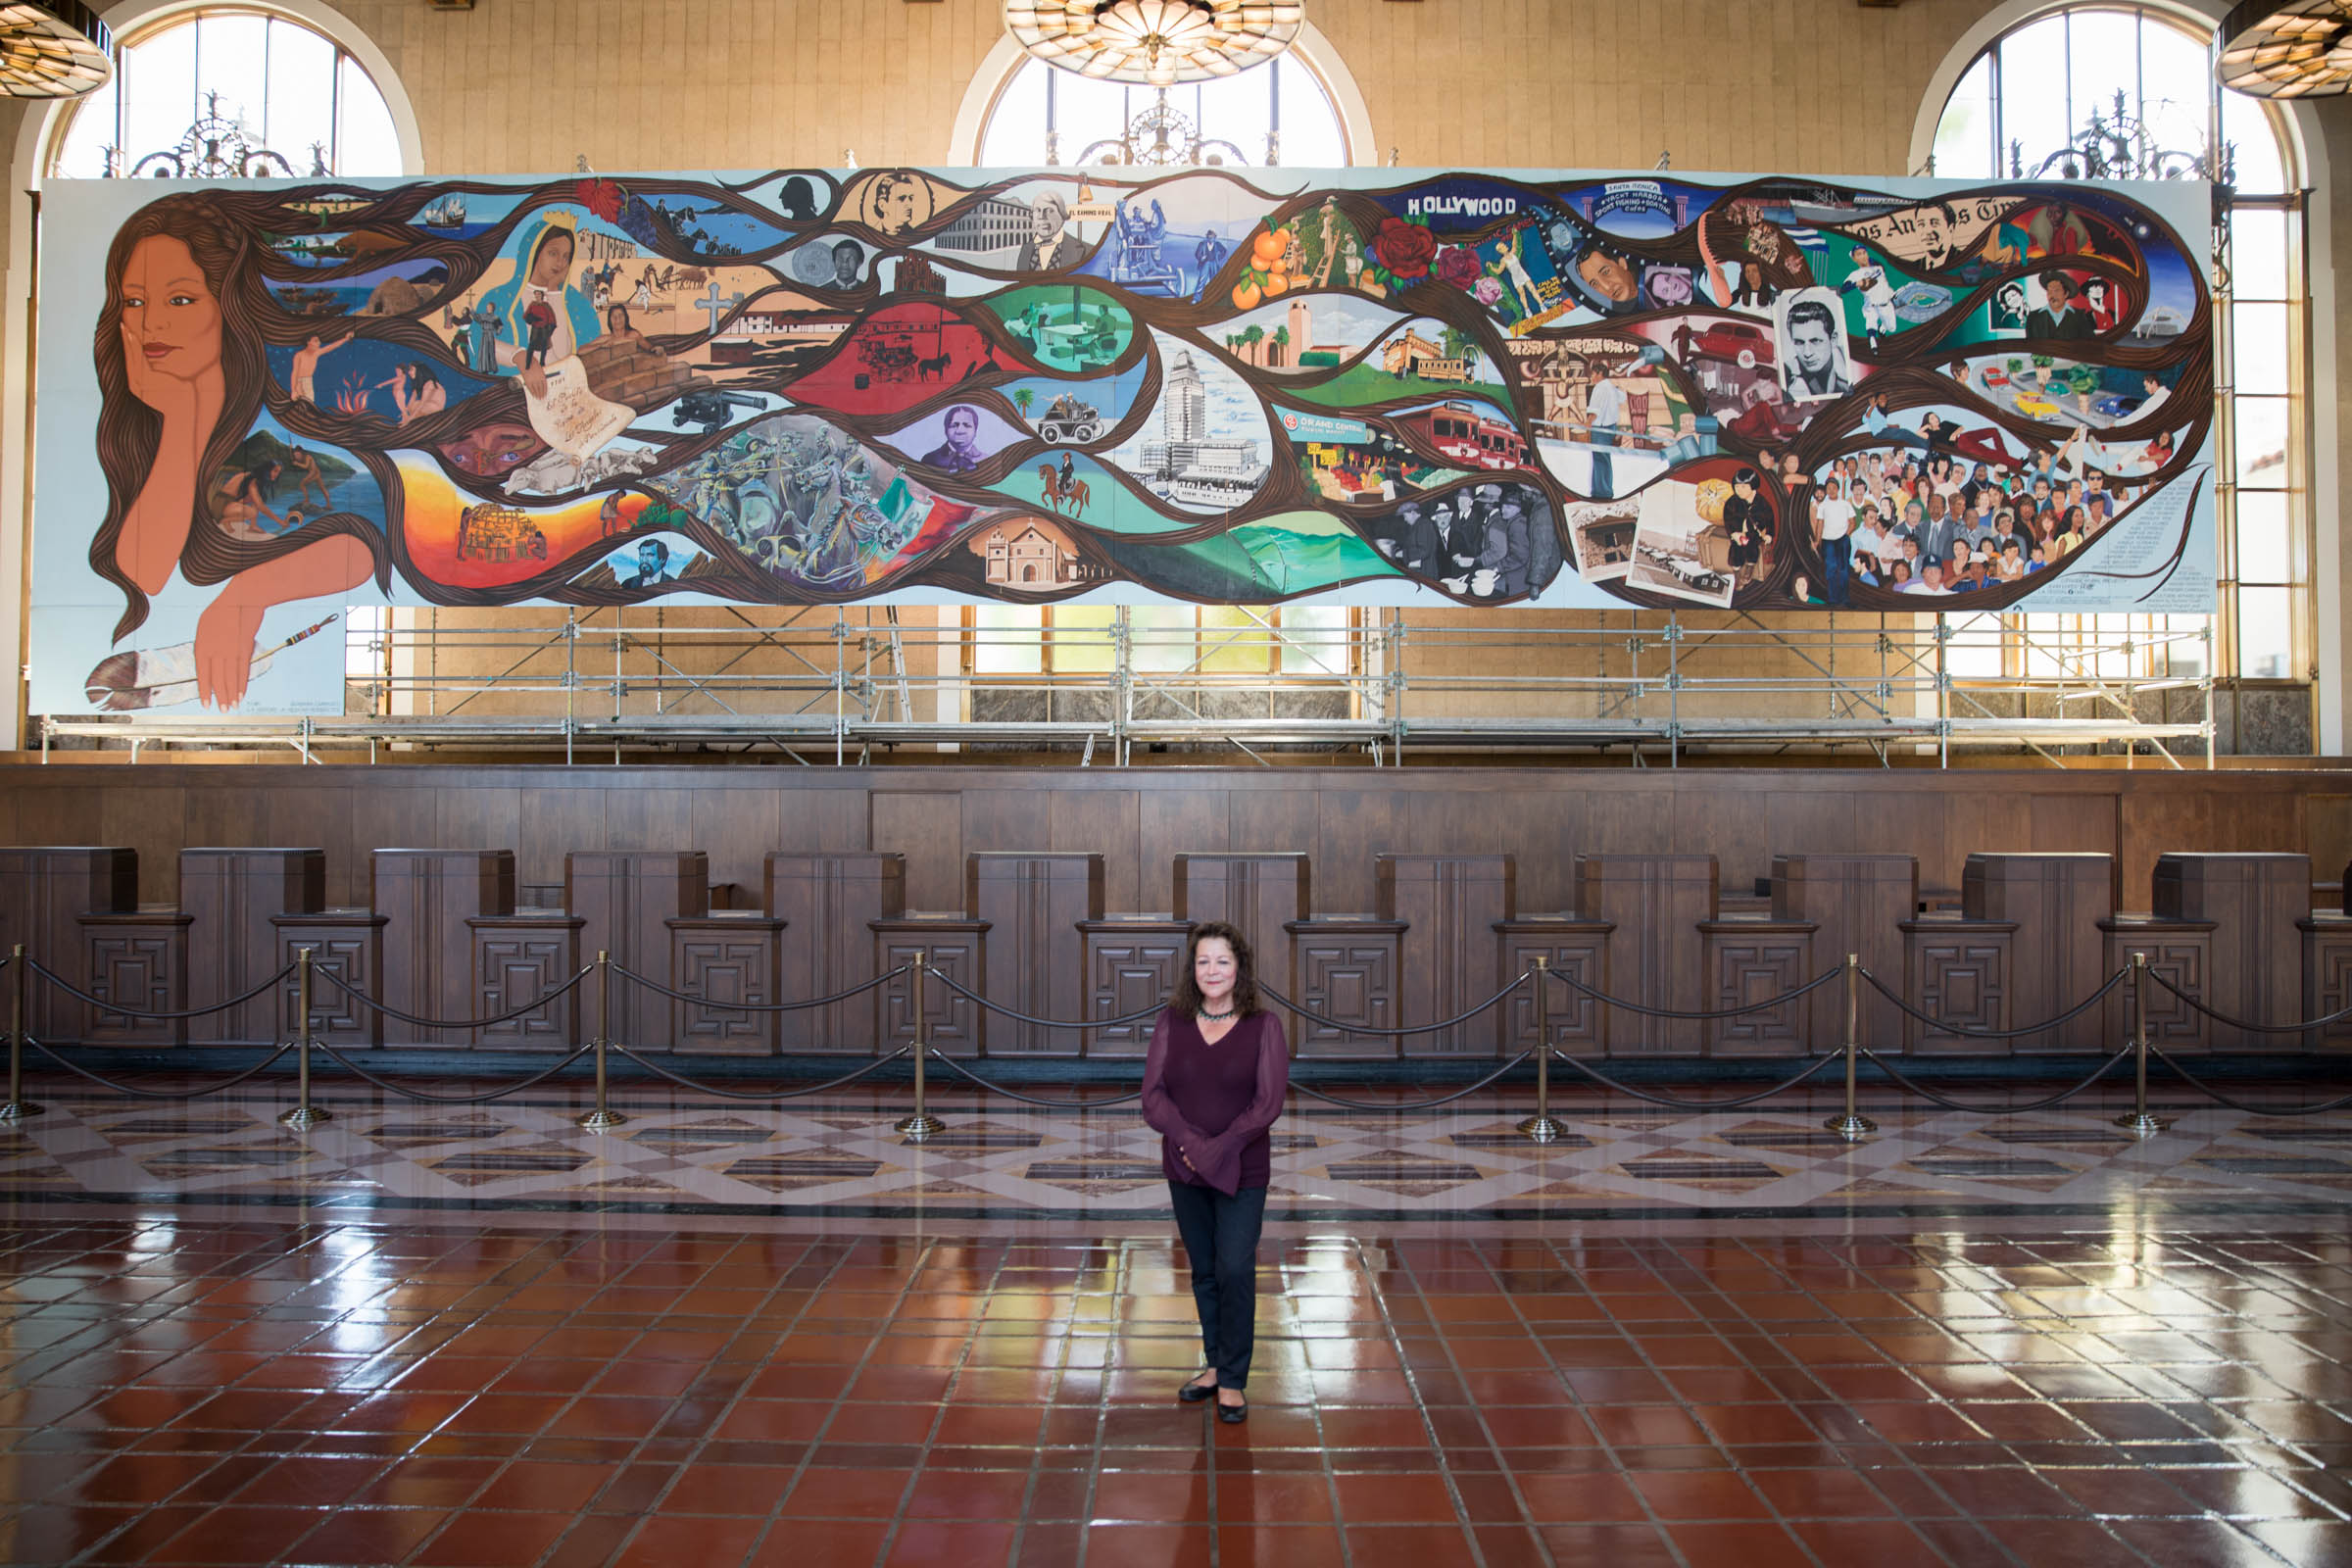 Murales rebeldes l a chicana o murals under seige for Cleveland gas station mural